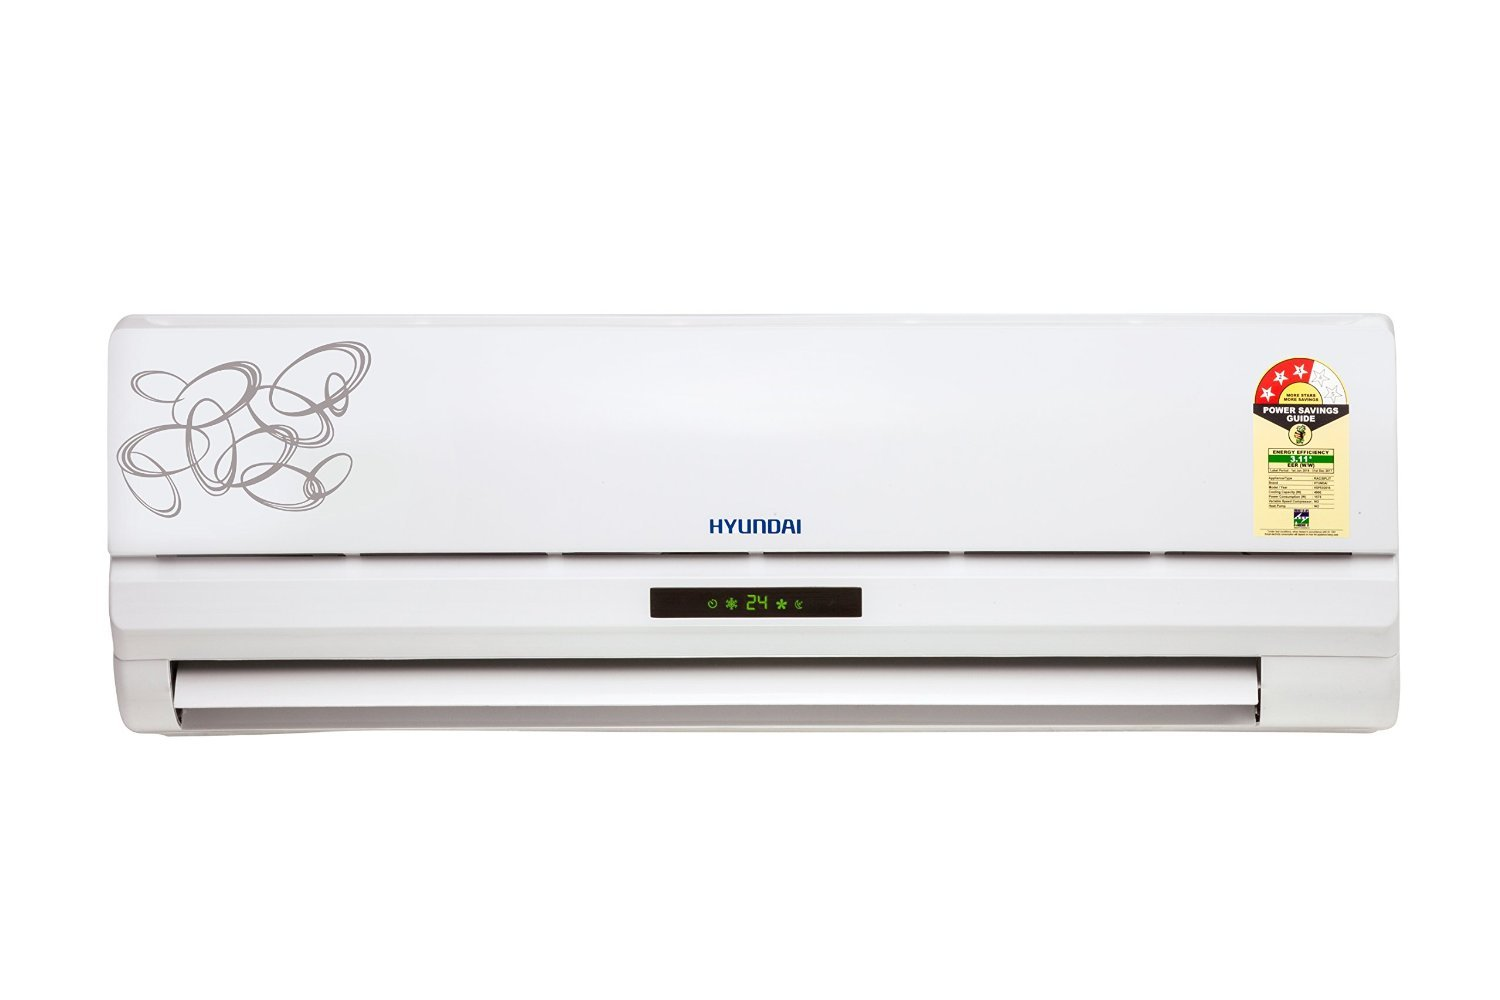 Home Shopping Spree 24th- 28th August | Hyundai HSP53.GO1-QGE Split AC with Americano Bag worth Rs 3990 Free (1.5 Ton, 3 Star Rating, White) By Amazon @ Rs 23,199